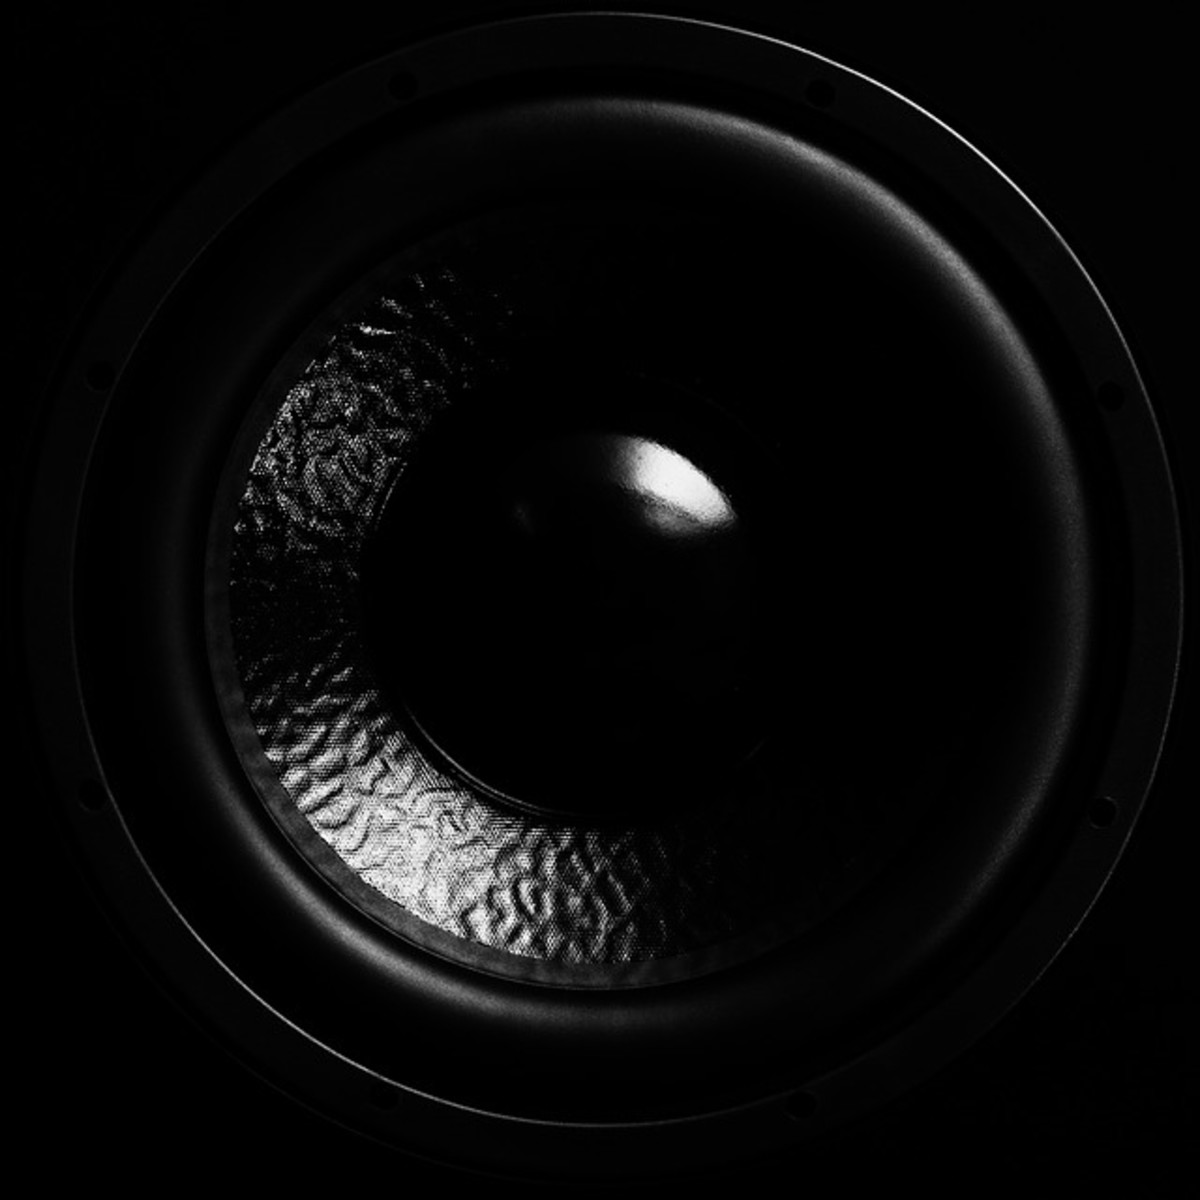 Low Frequency Bass Driver.  Low frequency sounds fill out the audio output and give a fuller experience.  More depth is also provided.  Bookshelf speakers are sometimes too small to output sufficient bass, so you may wish to buy a separate subwoofer.